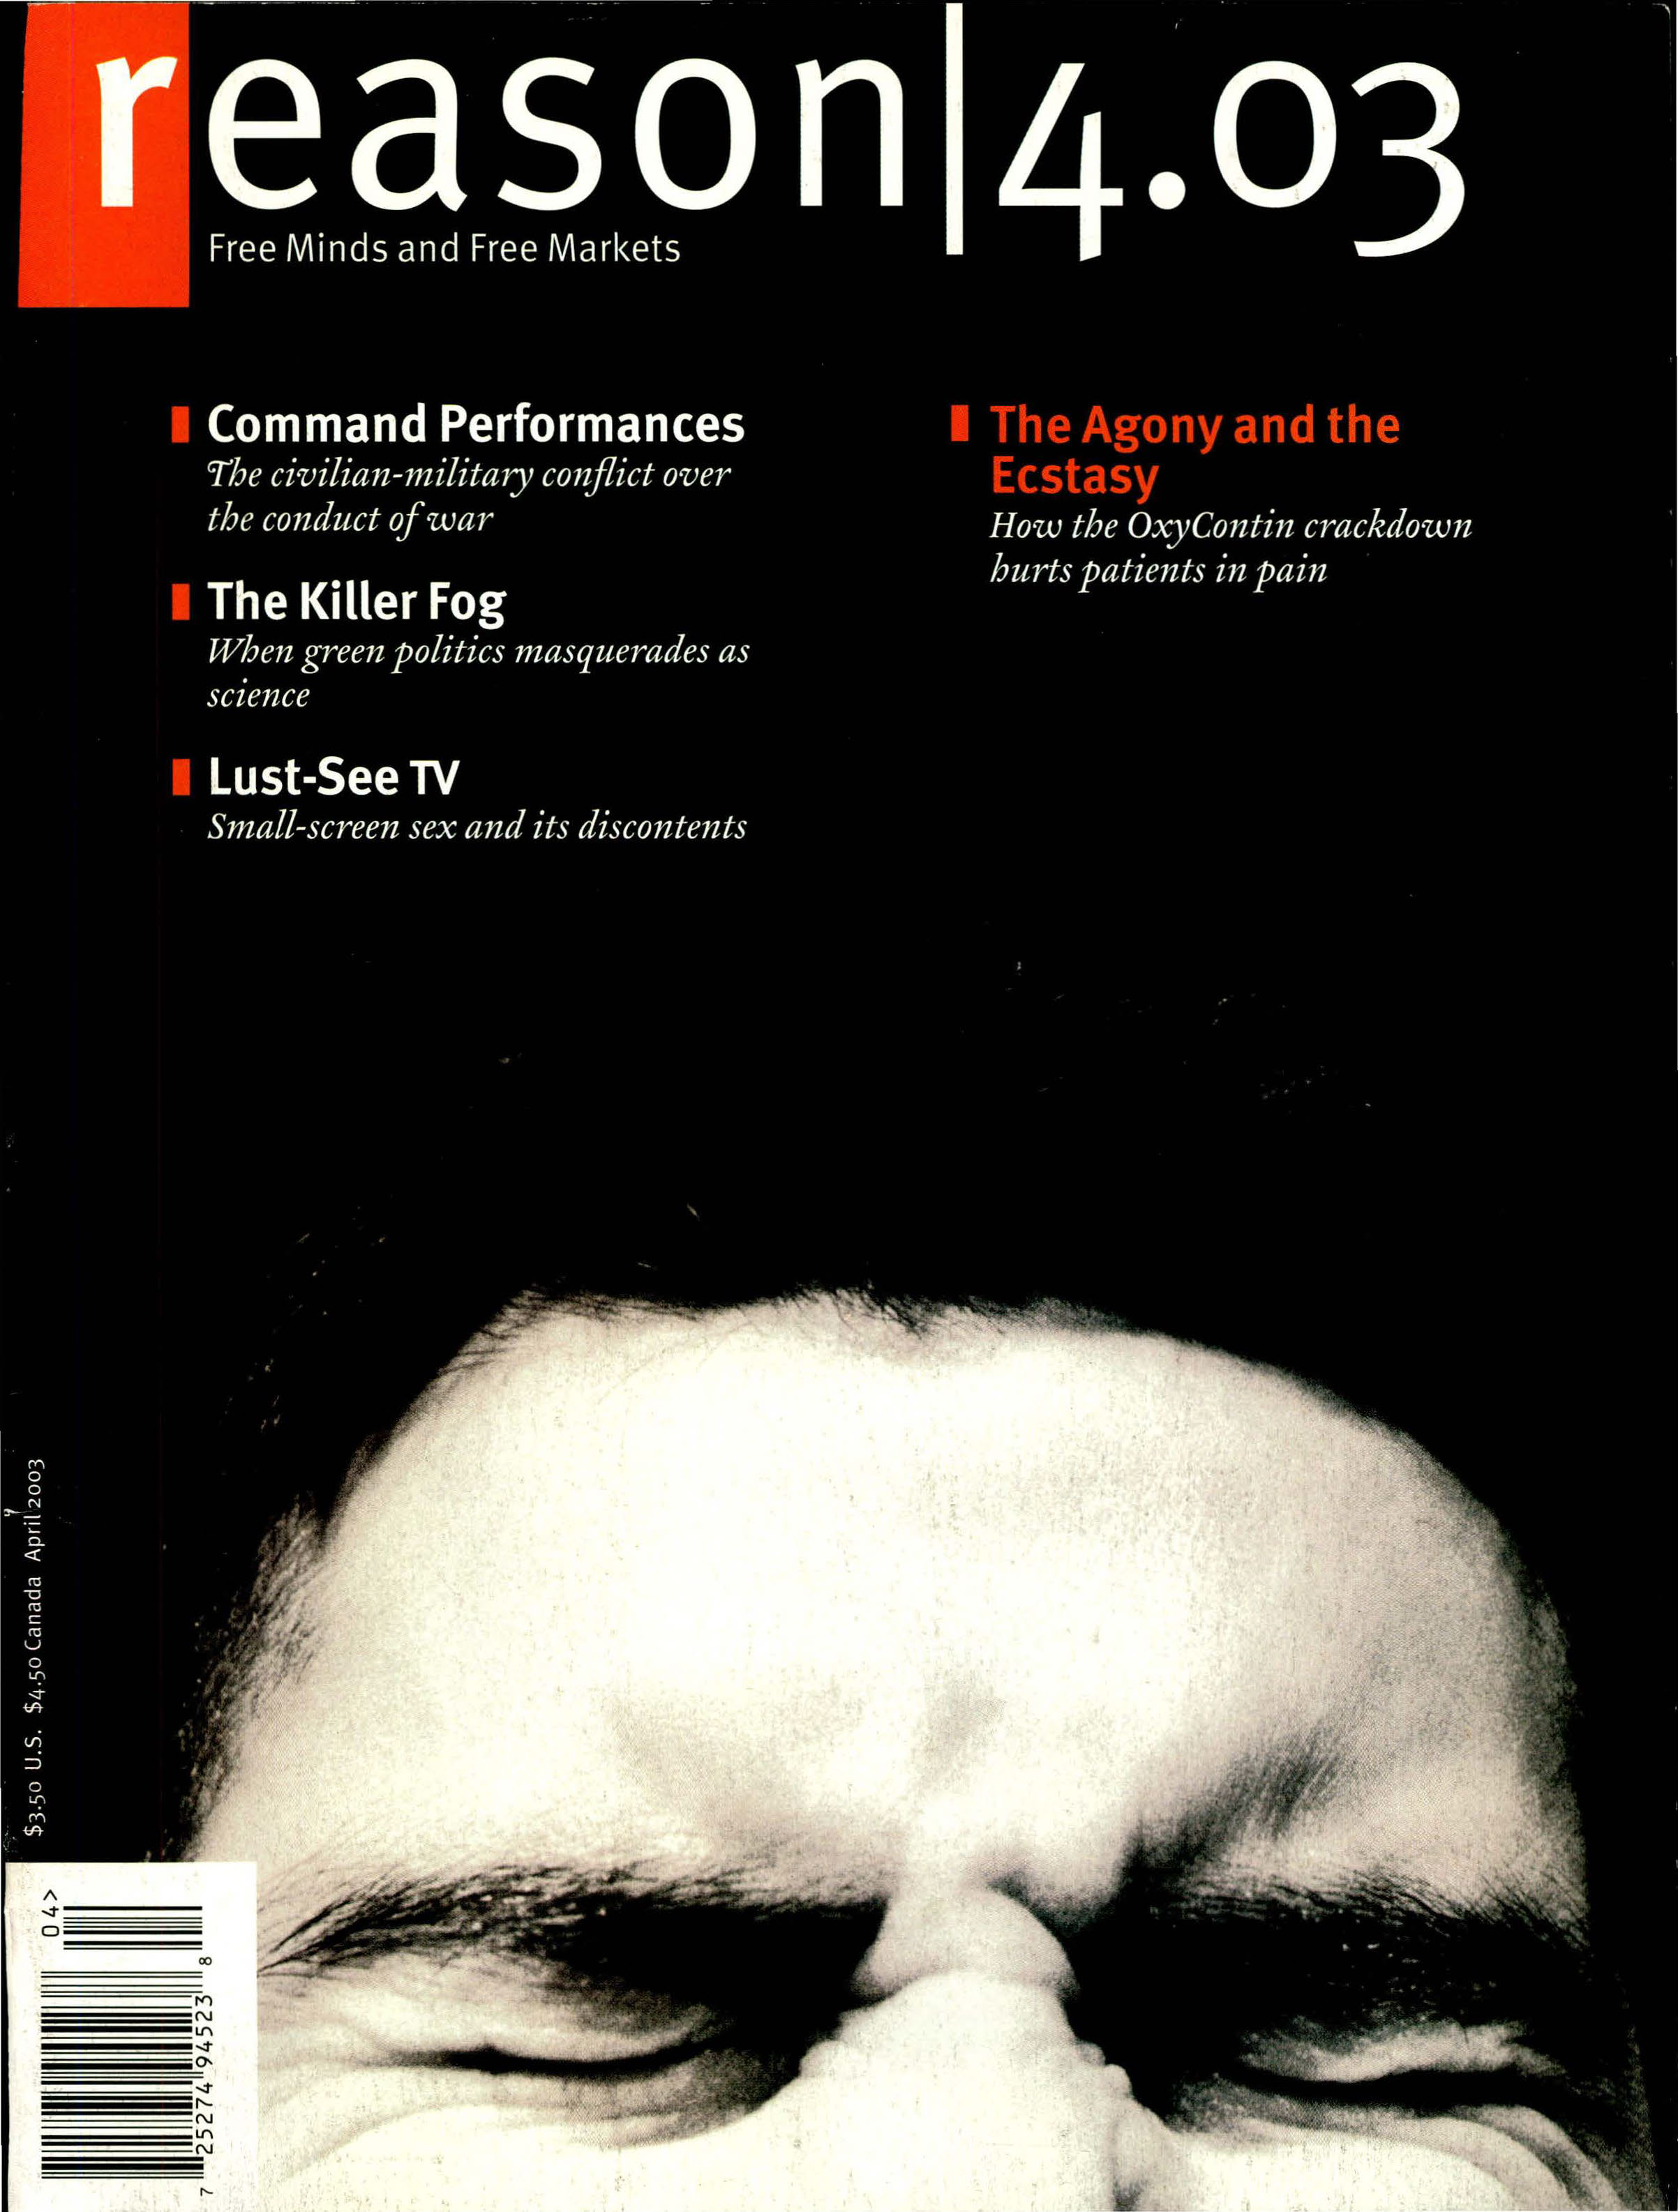 Reason Magazine, April 2003 cover image